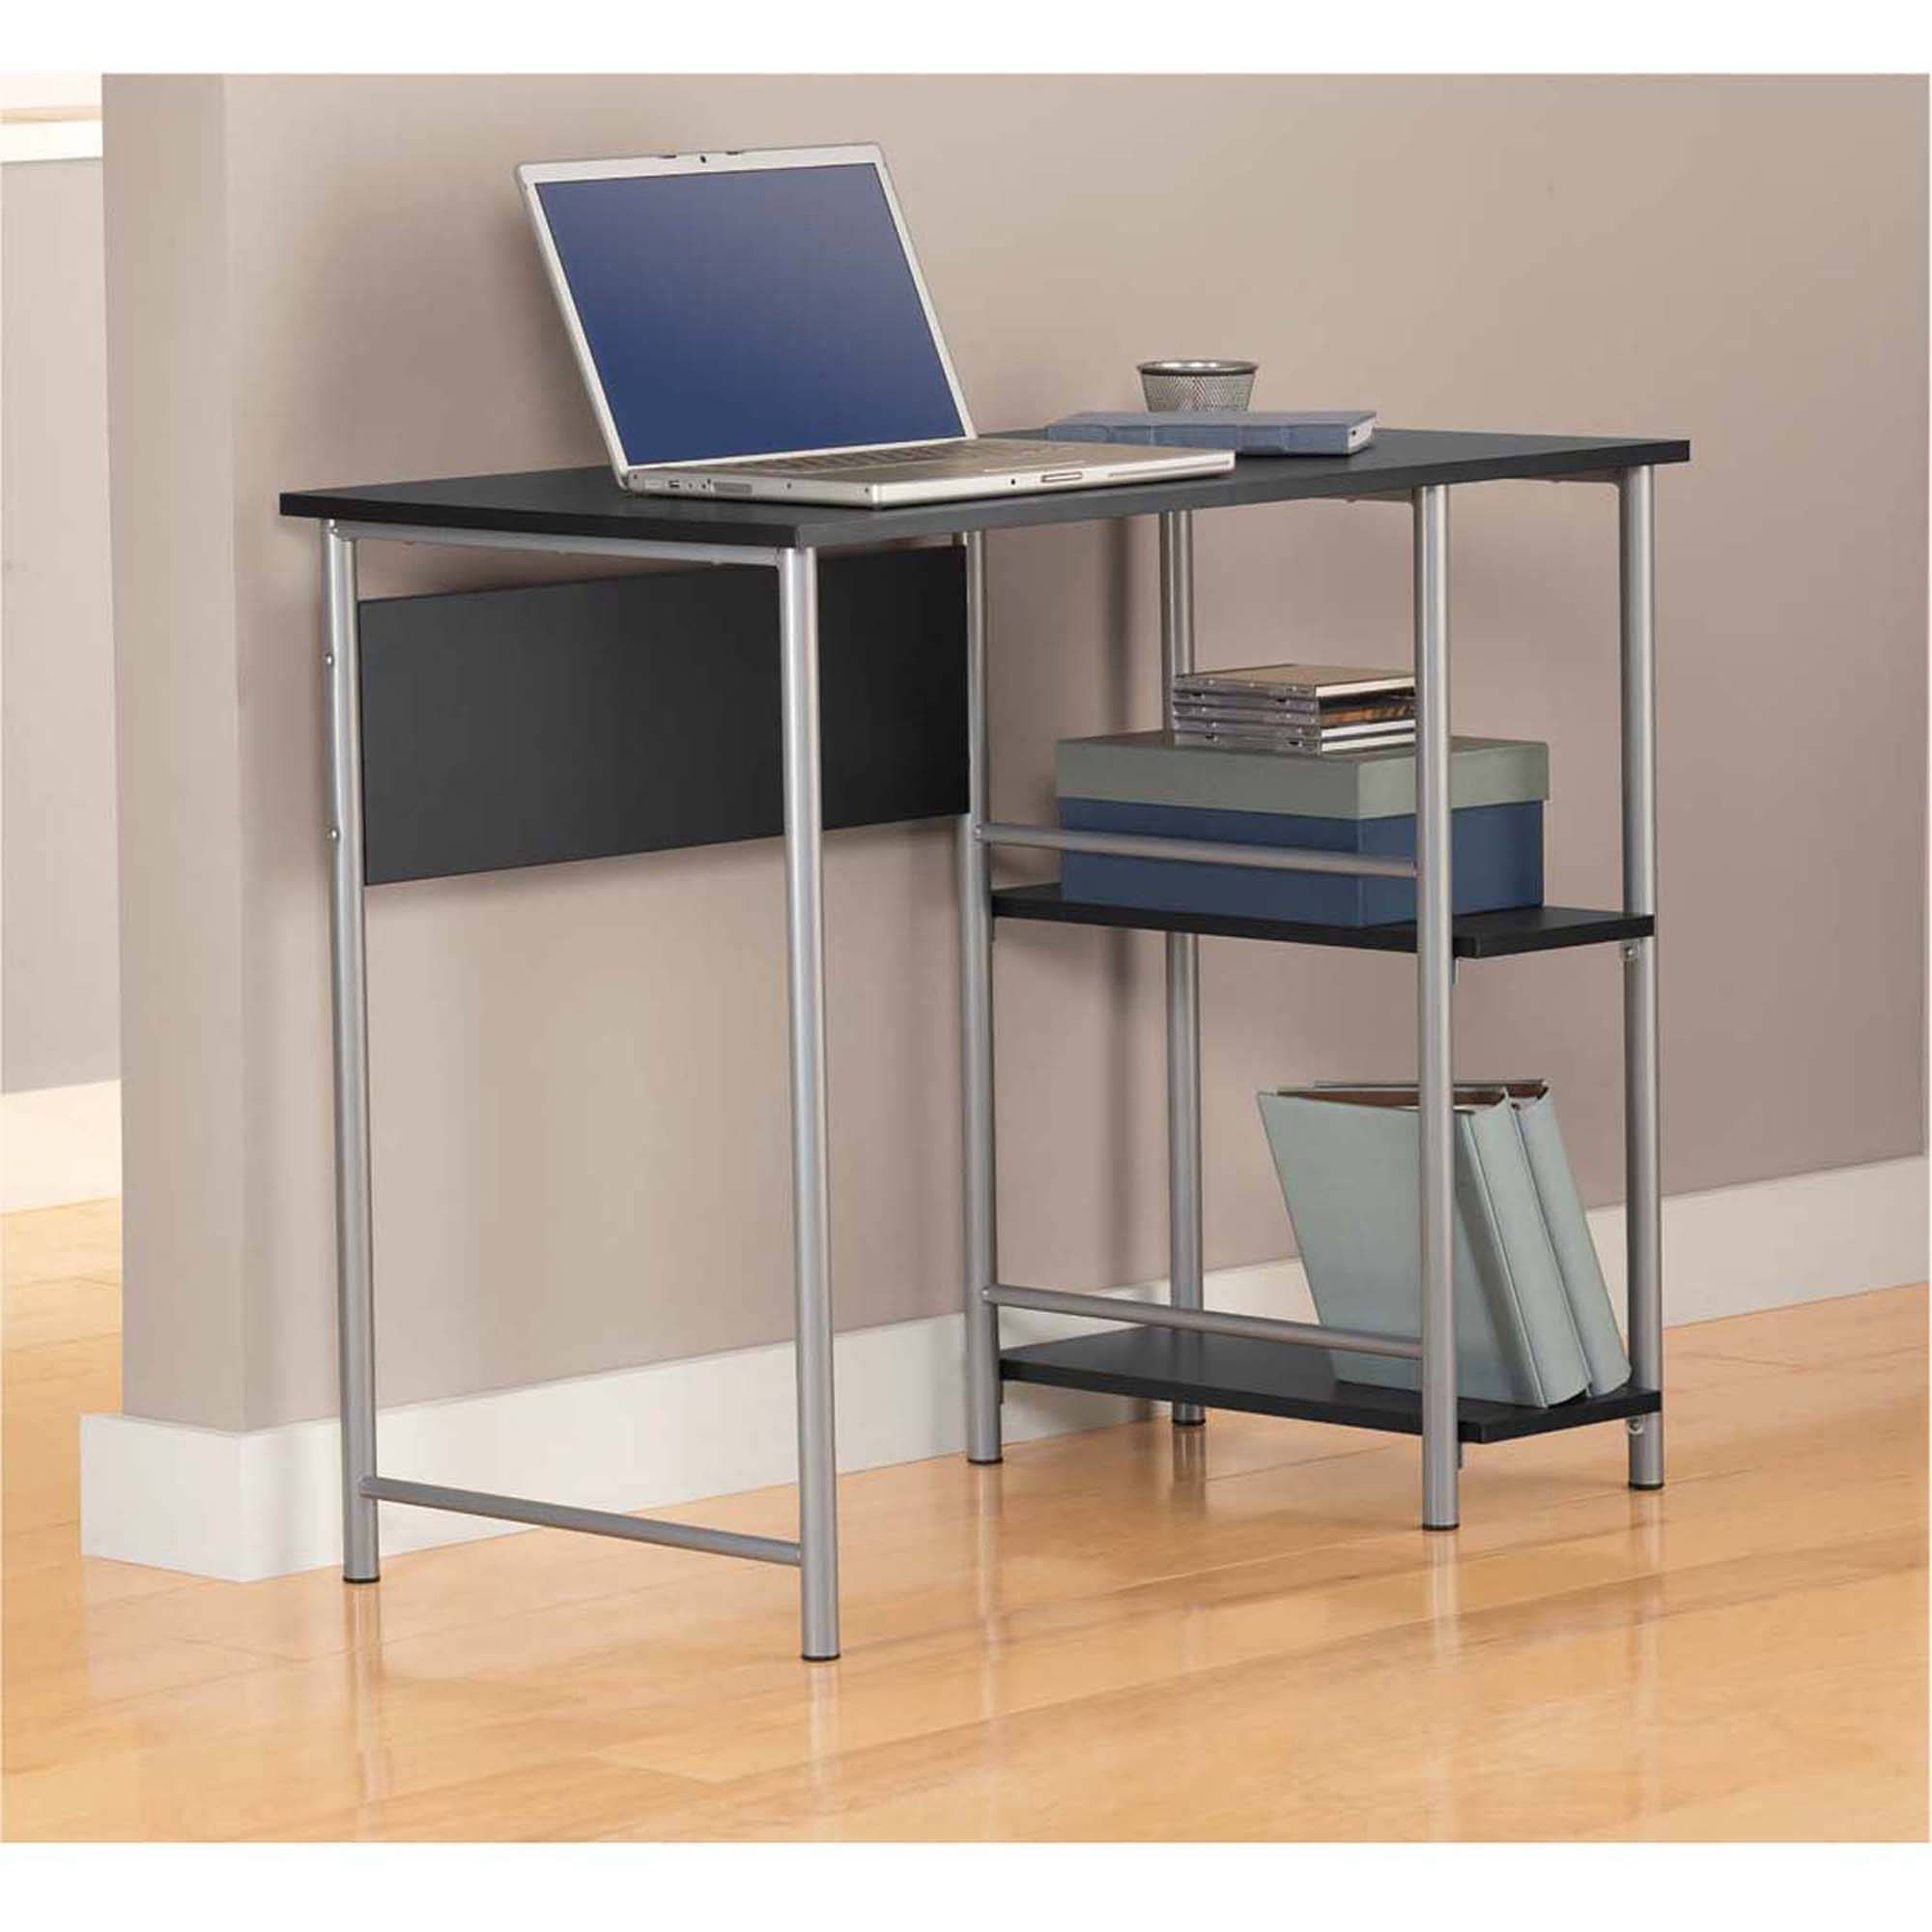 Mainstays Basic Student Desk, Multiple Colors